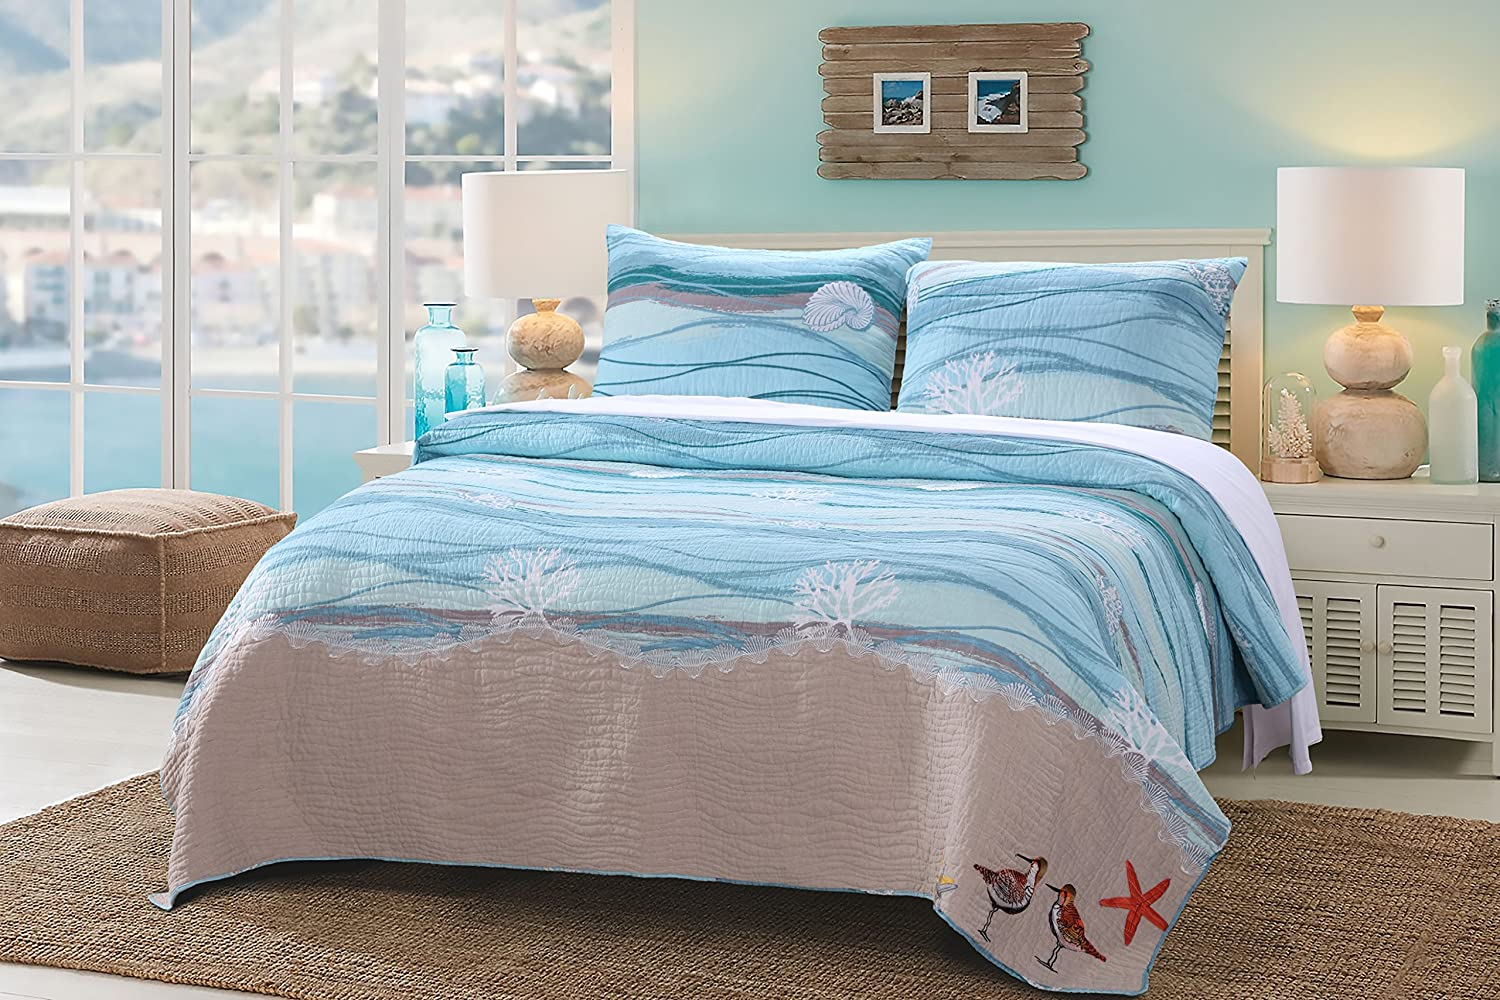 Greenland Home 3 Piece Maui Quilt Set, Full/Queen